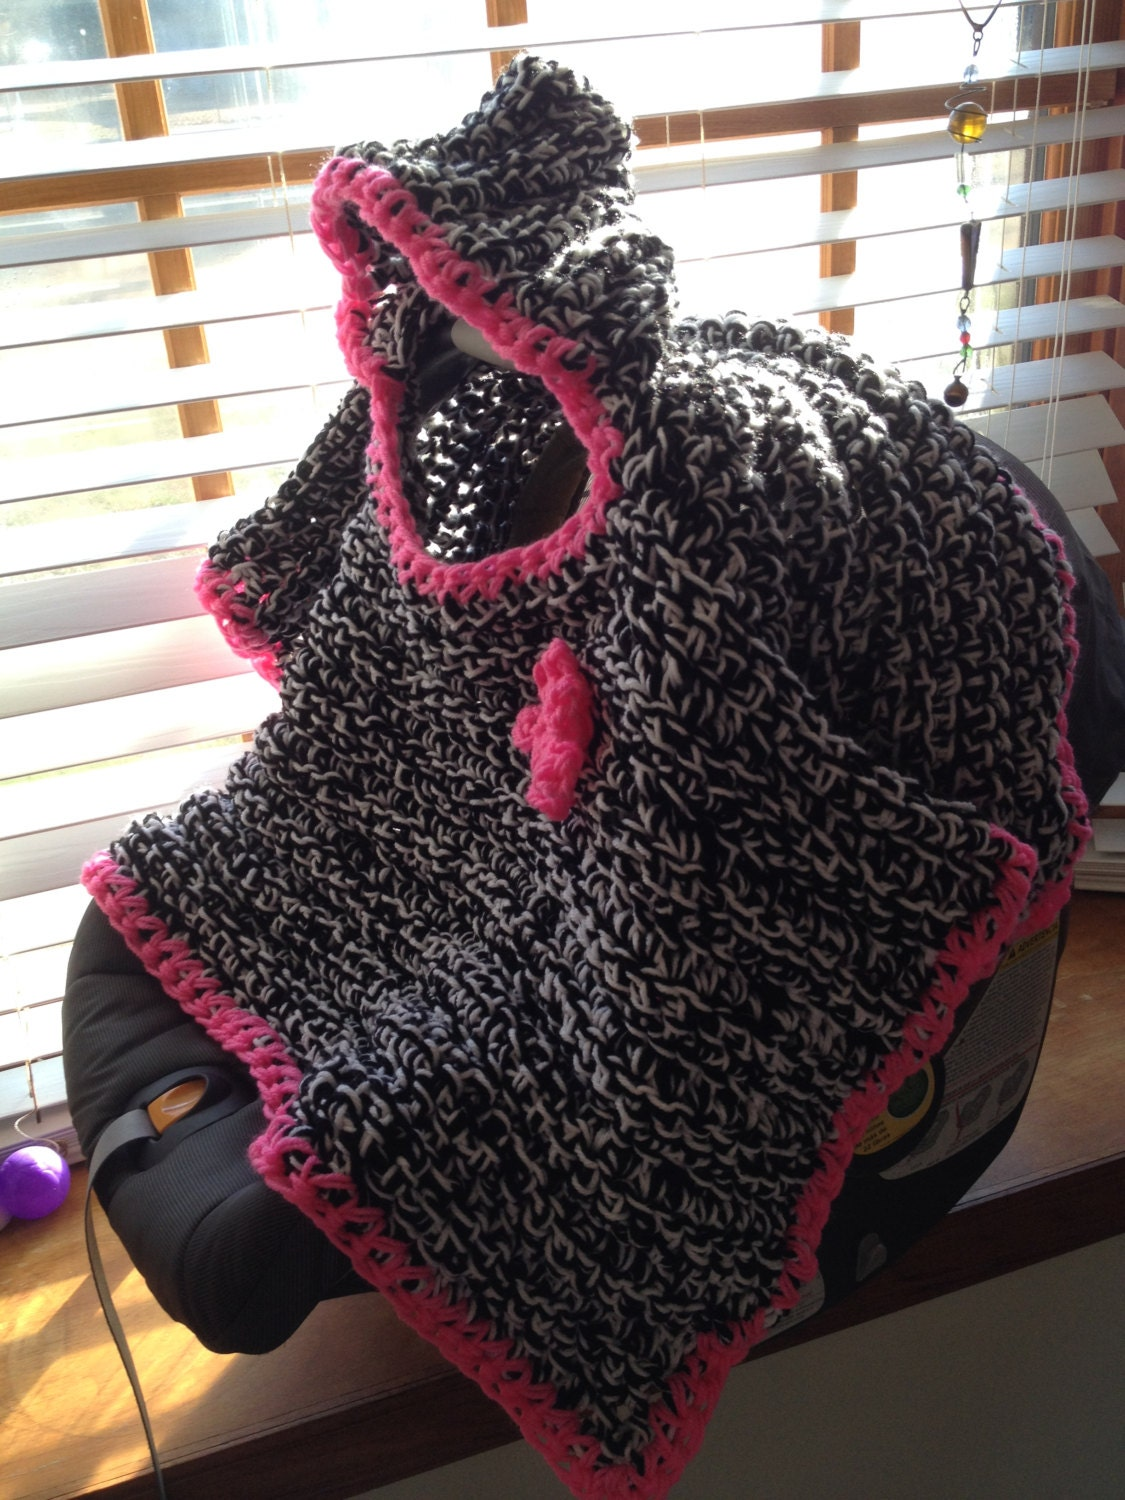 Crochet Patterns For Baby Blankets With Hoods Hooded Car Seat Blanket Baby